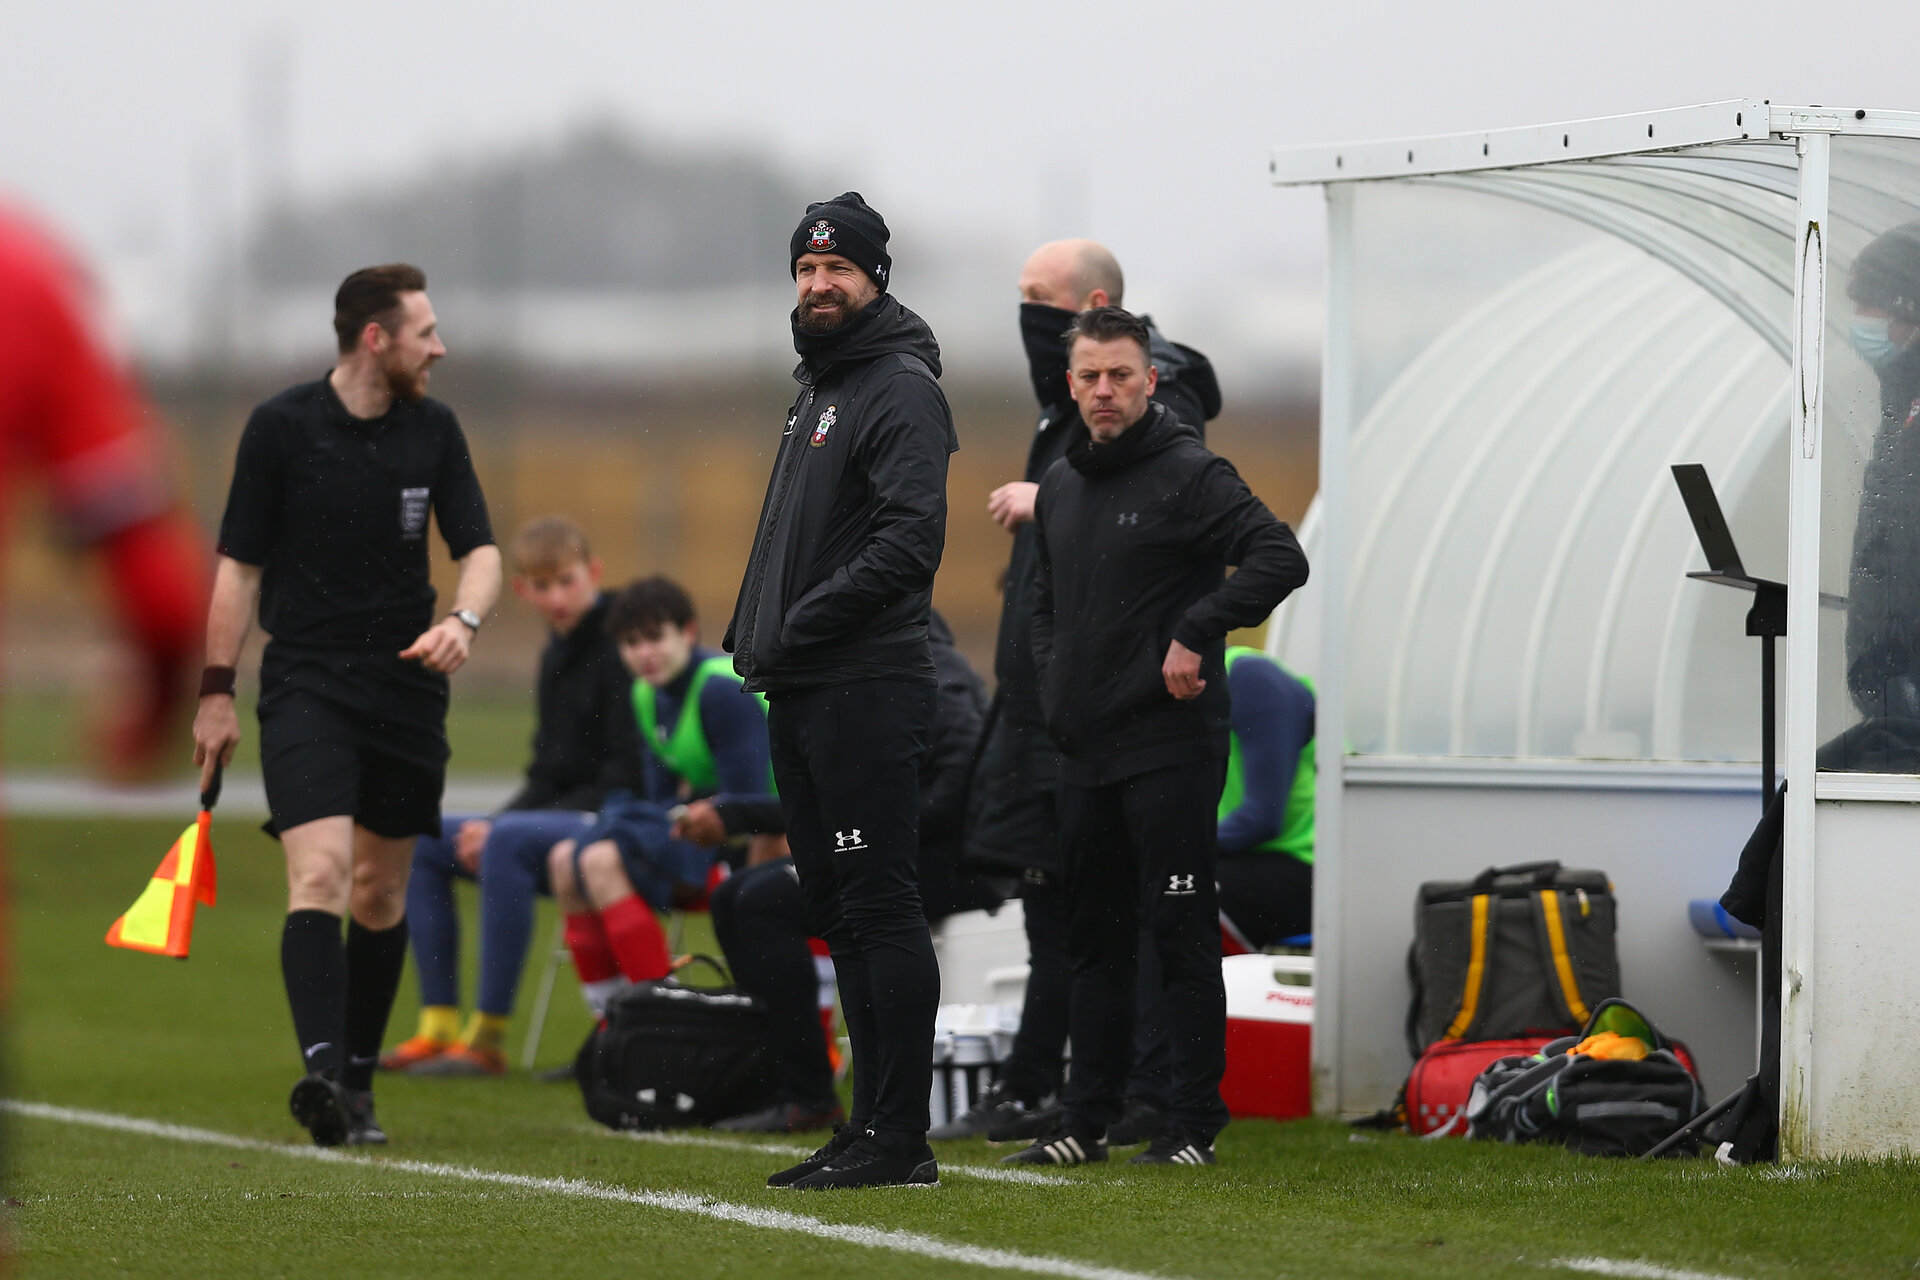 BRIGHTON, ENGLAND - FEBRUARY 16: Louis Carey Southampton U18s assistant coach during the Premier League U18s match between Brighton & Hove Albion and Southampton U18 at The Amex Elite Football Performance Center on February 16, 2021 in Brighton, England. (Photo by Isabelle Field/Southamtpon FC)